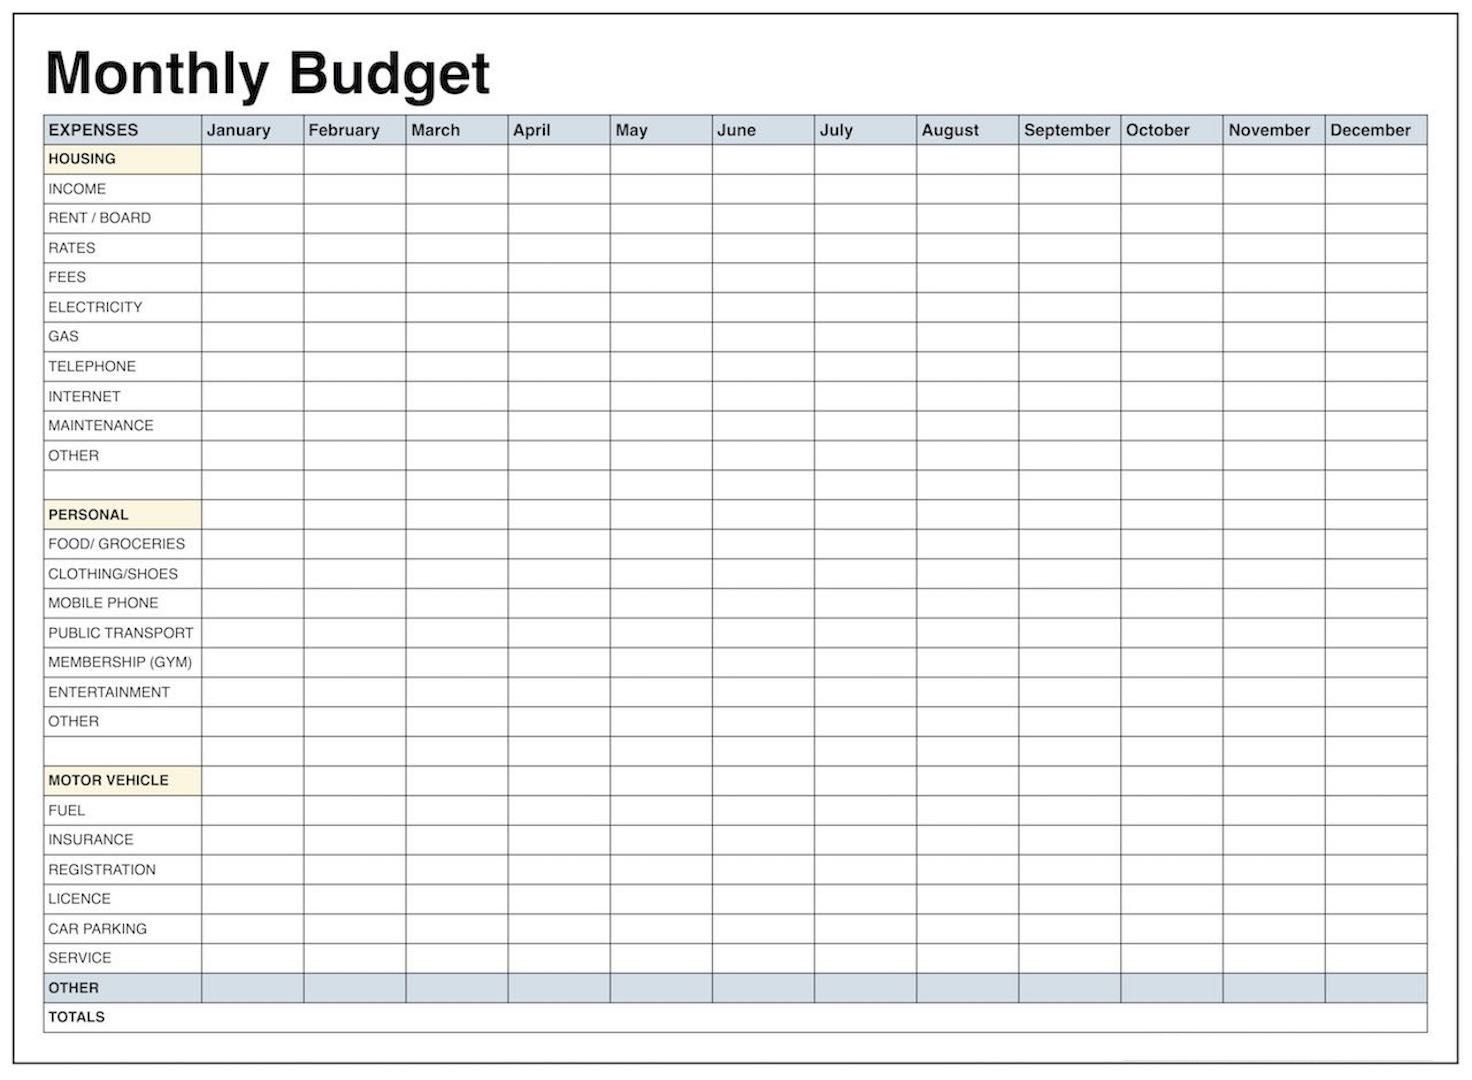 Printable Monthly Budget Worksheet Excel - Koran.sticken.co | Blank Budget Worksheet Printable